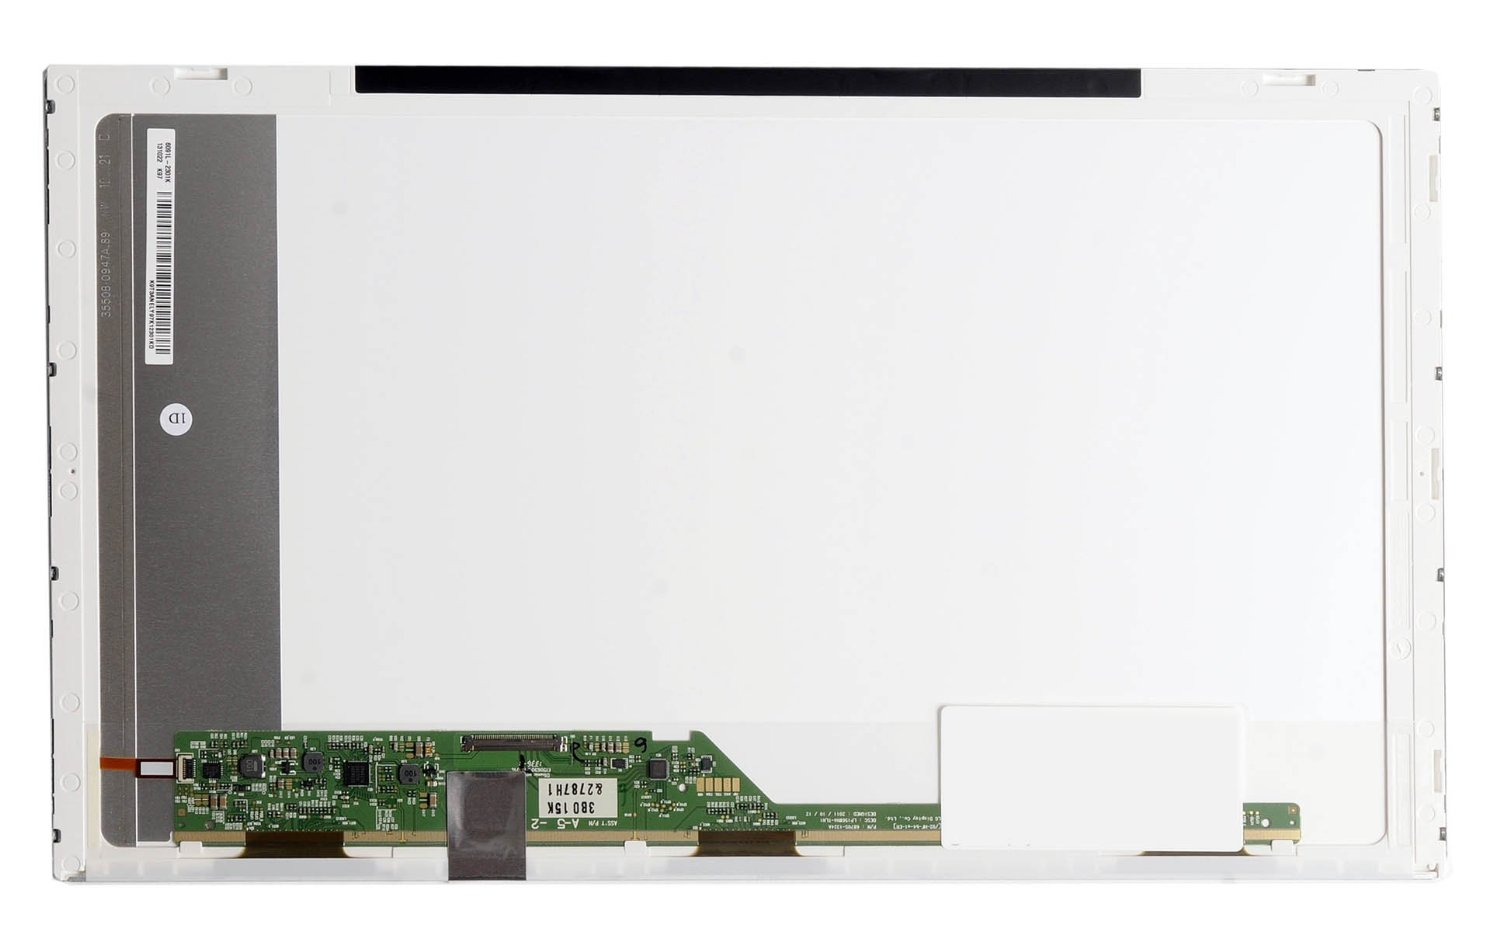 For Acer Aspire 5517-5571 (fits LED versions only) NEW 15.6 HD Laptop LCD Screen валз н 160мг 12 5мг 98 таблетки